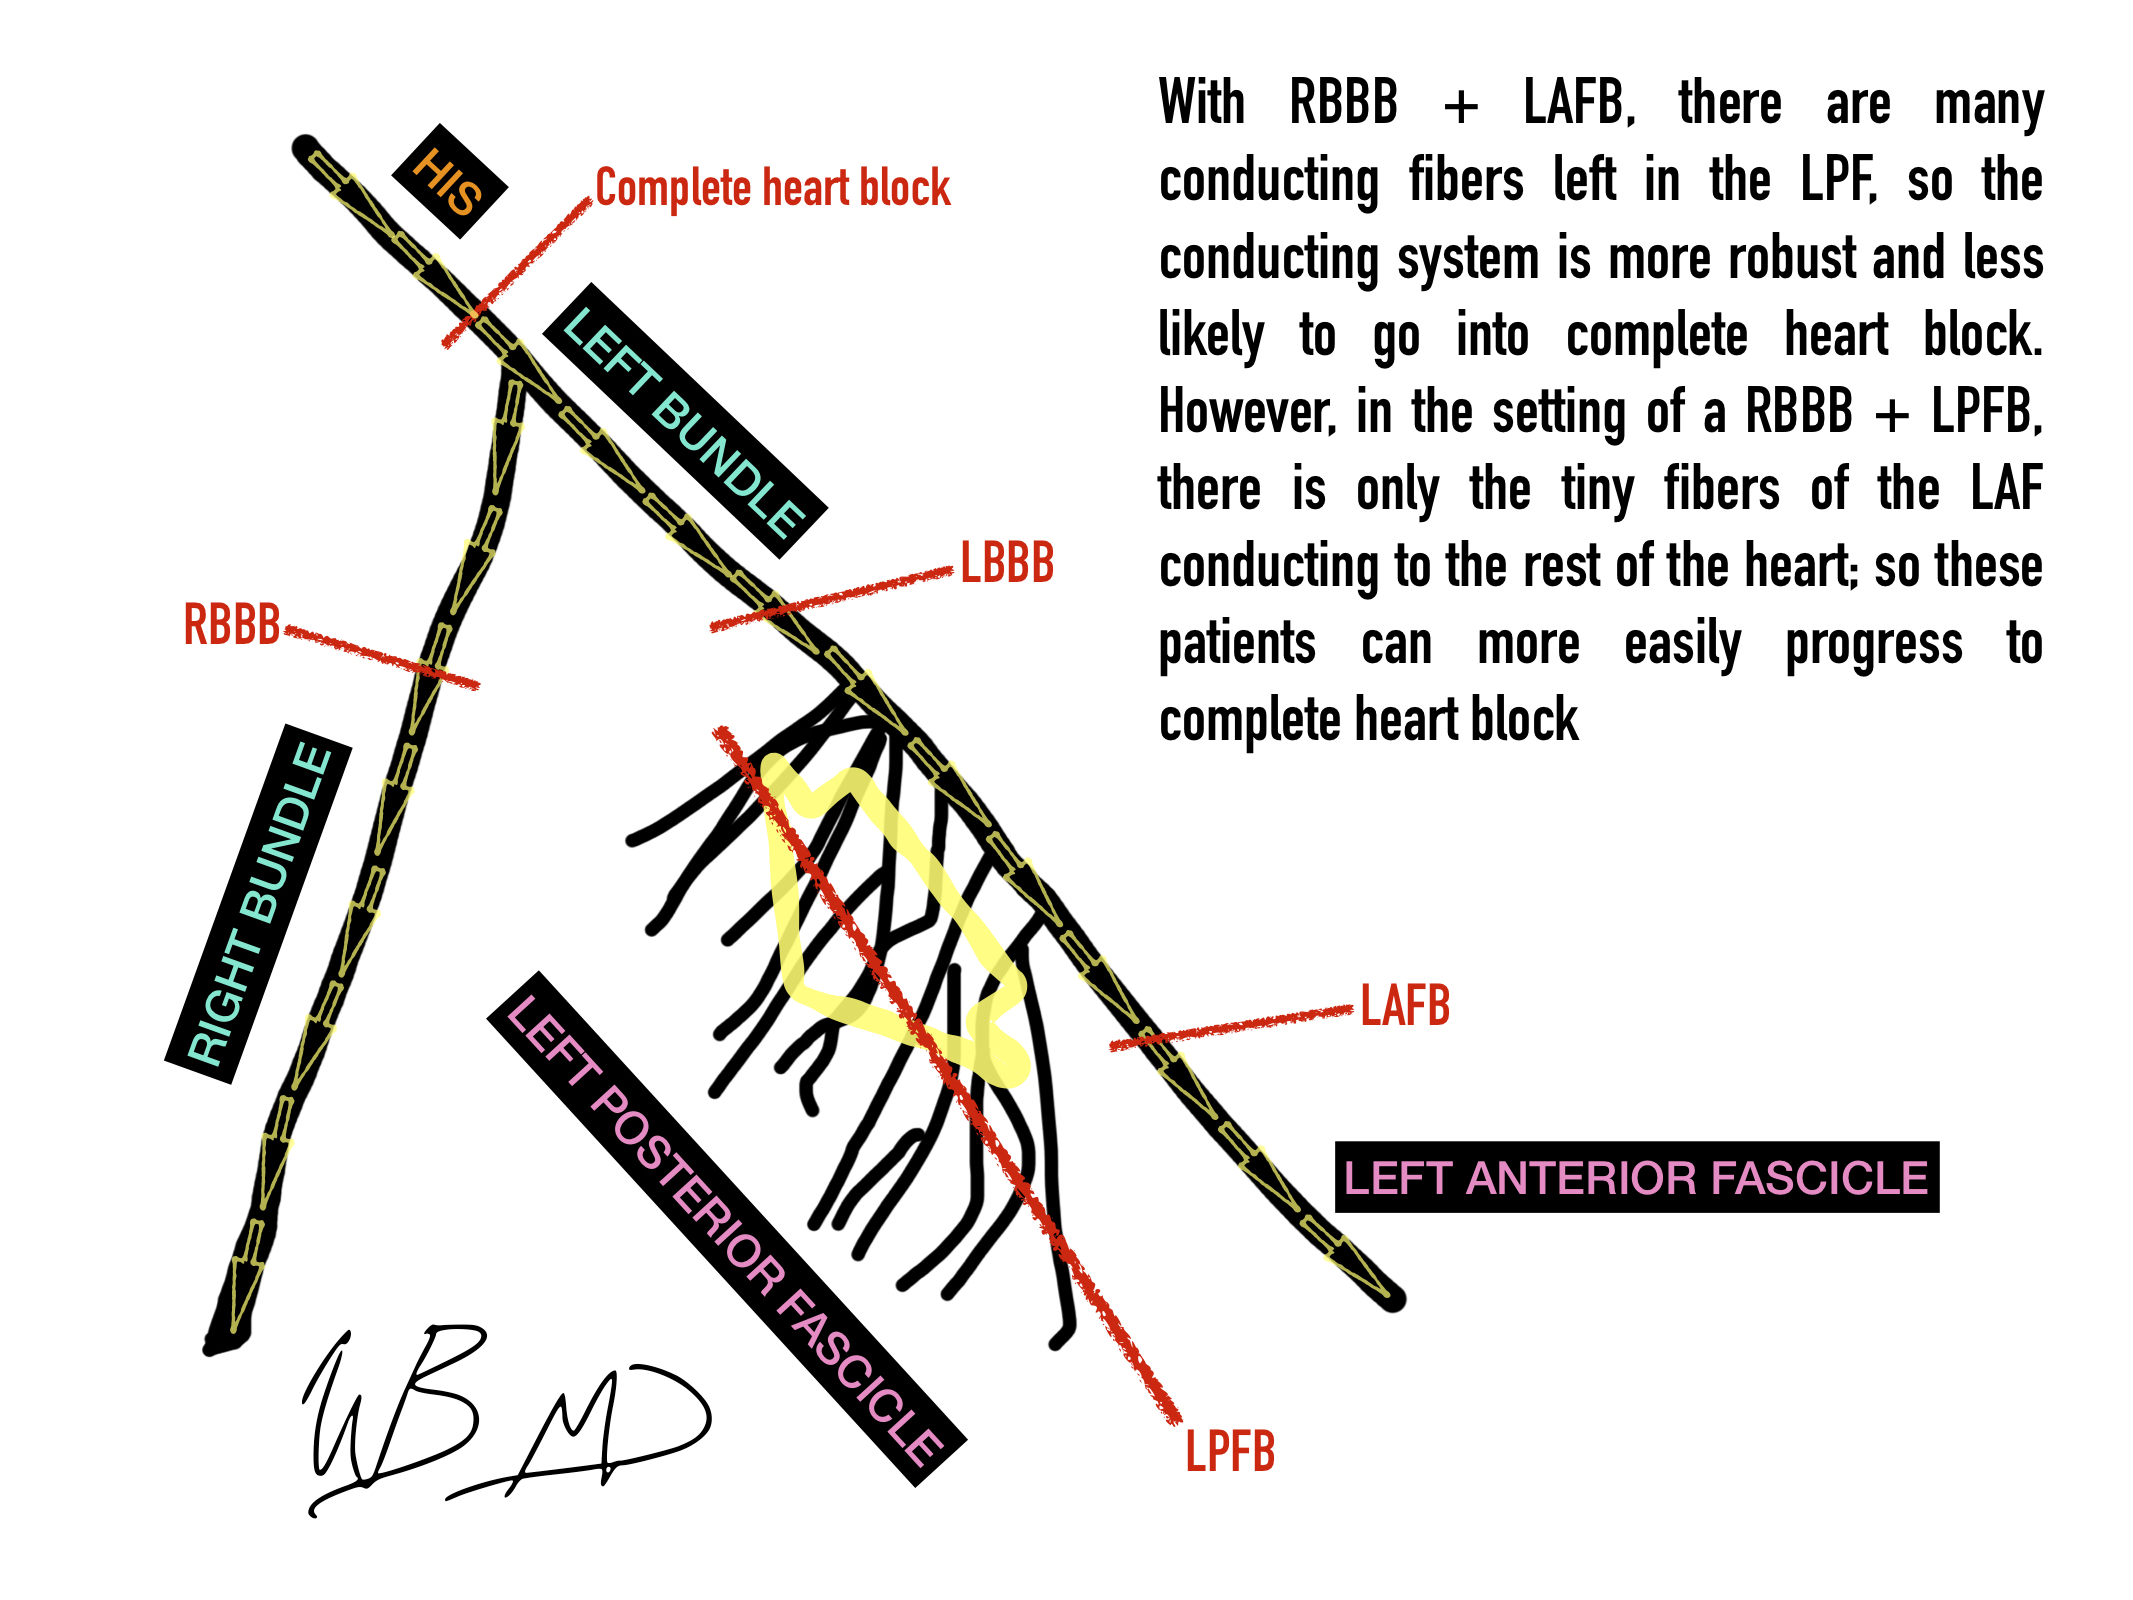 electrical-conducting-system-of-the-heart-text.jpg